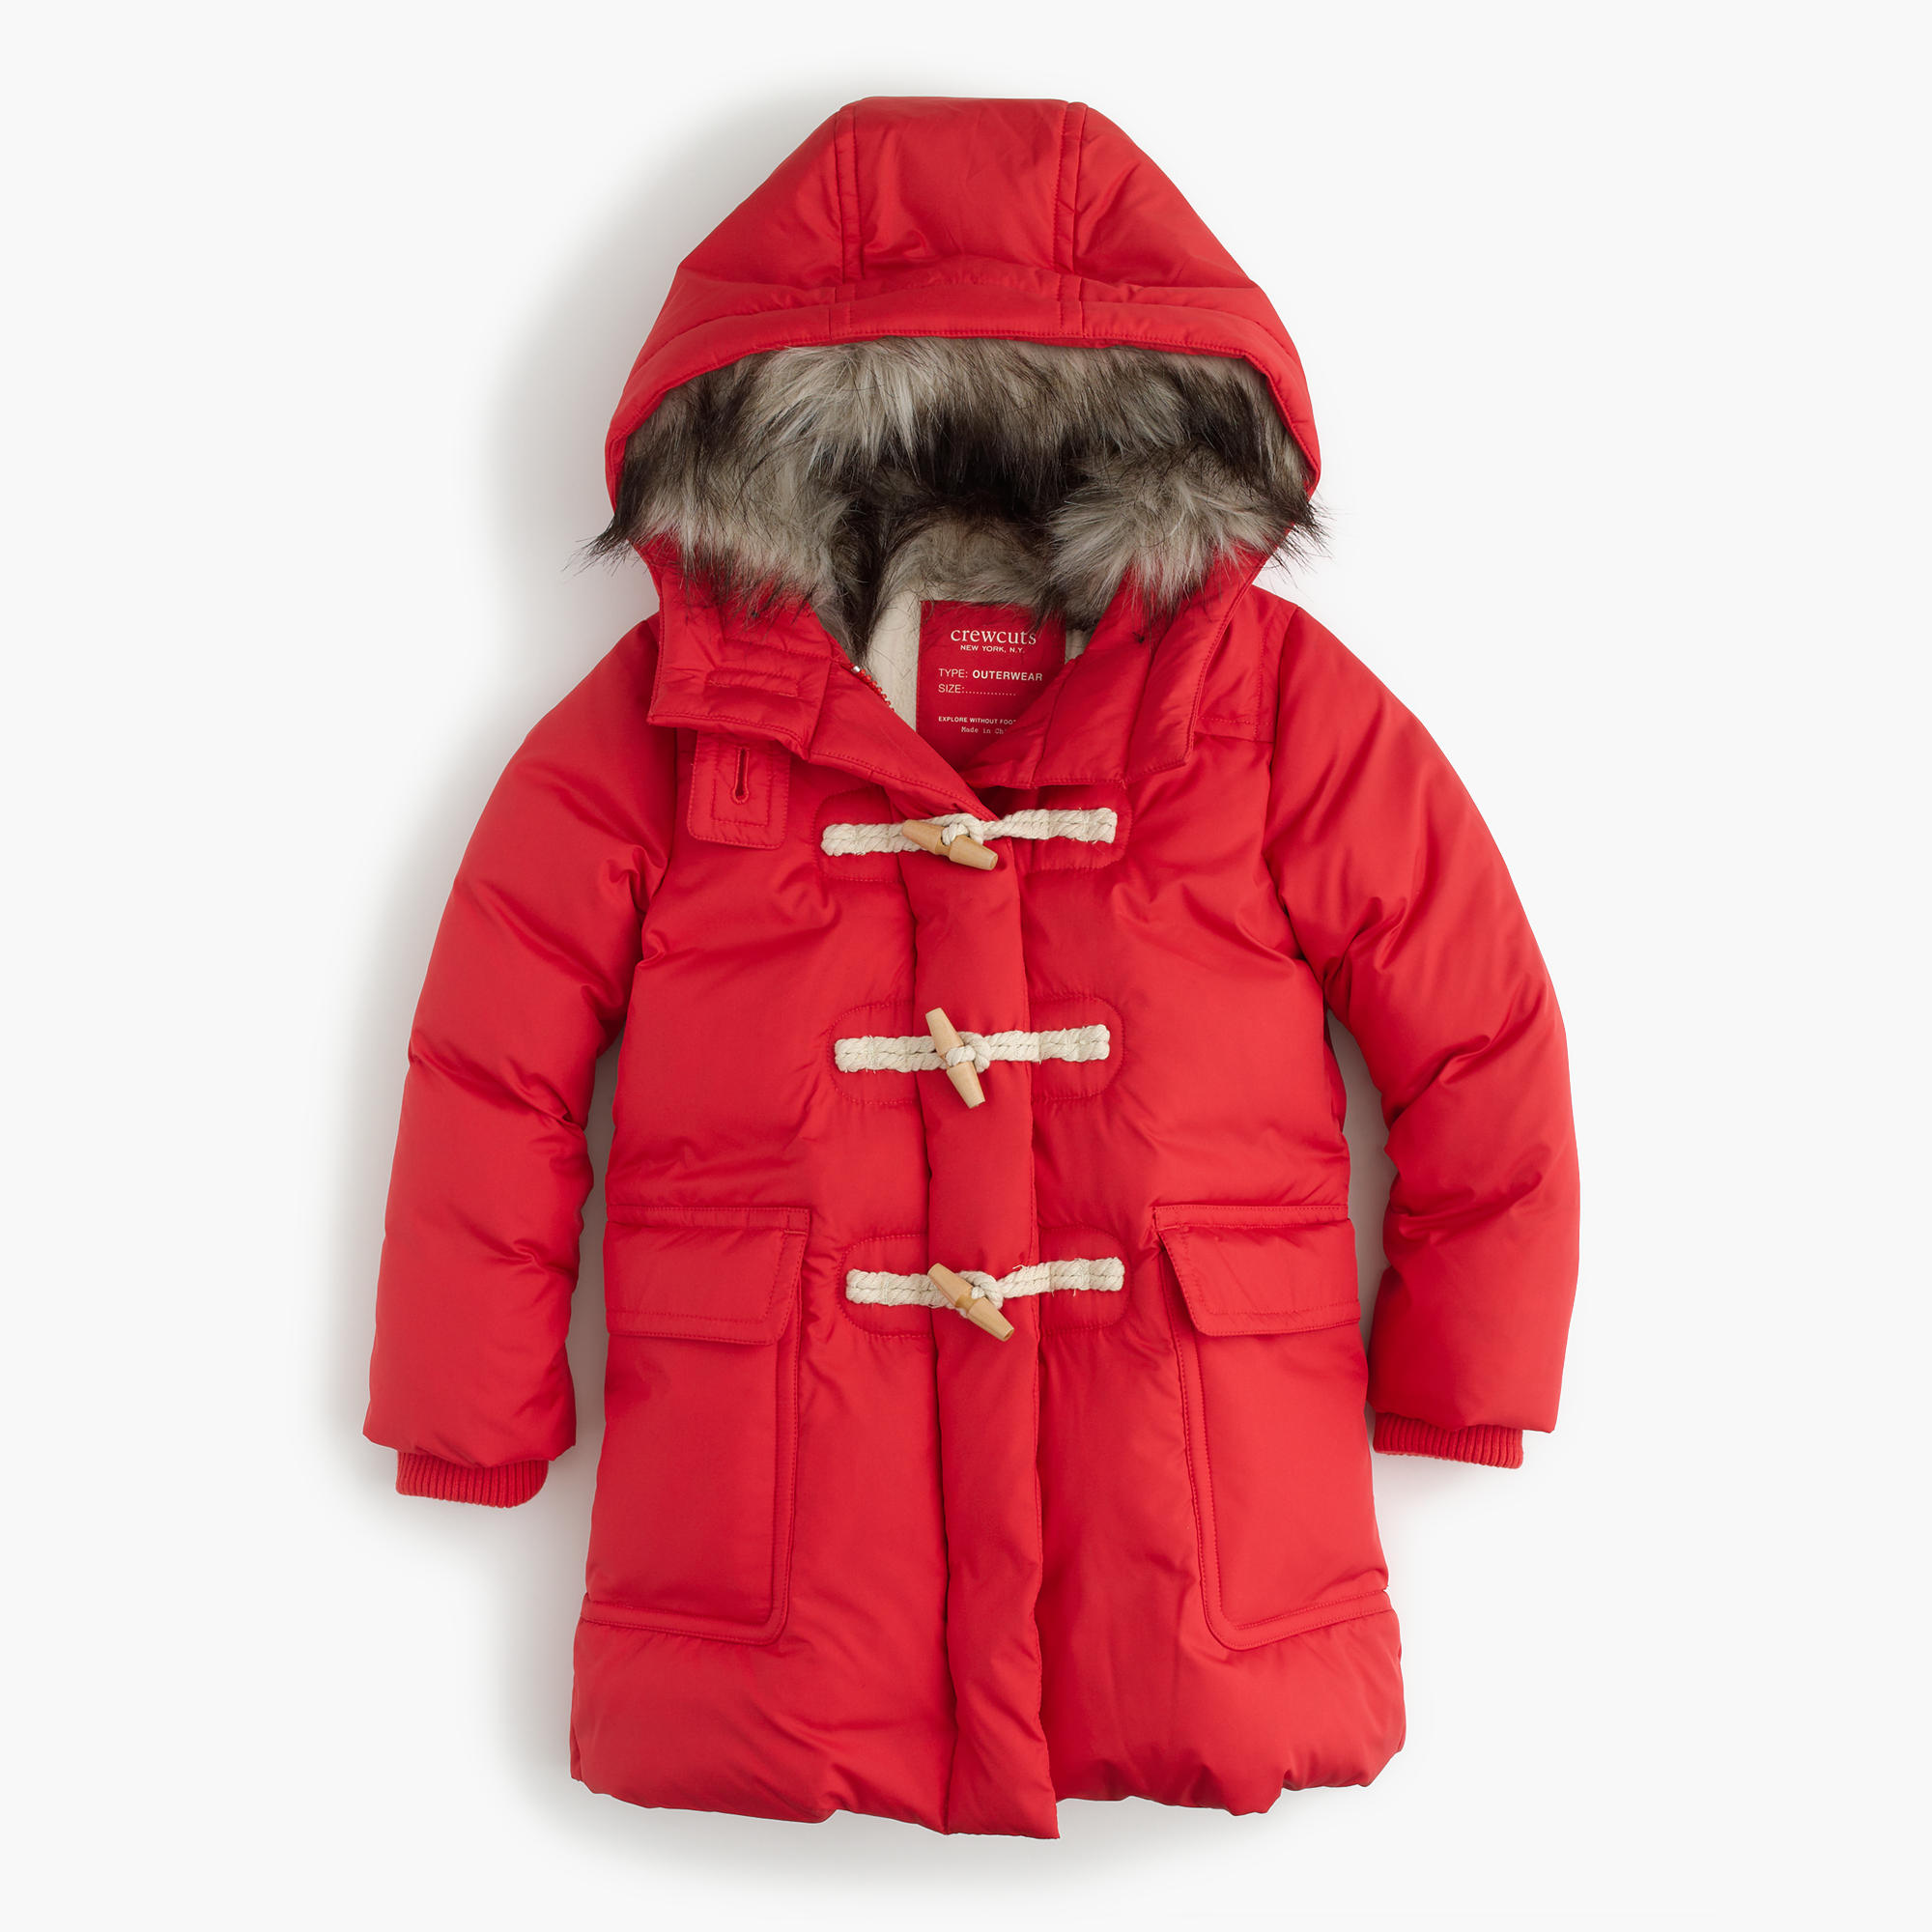 Girls' Toggle Puffer Coat : Girls' Jackets & Coats | J.Crew